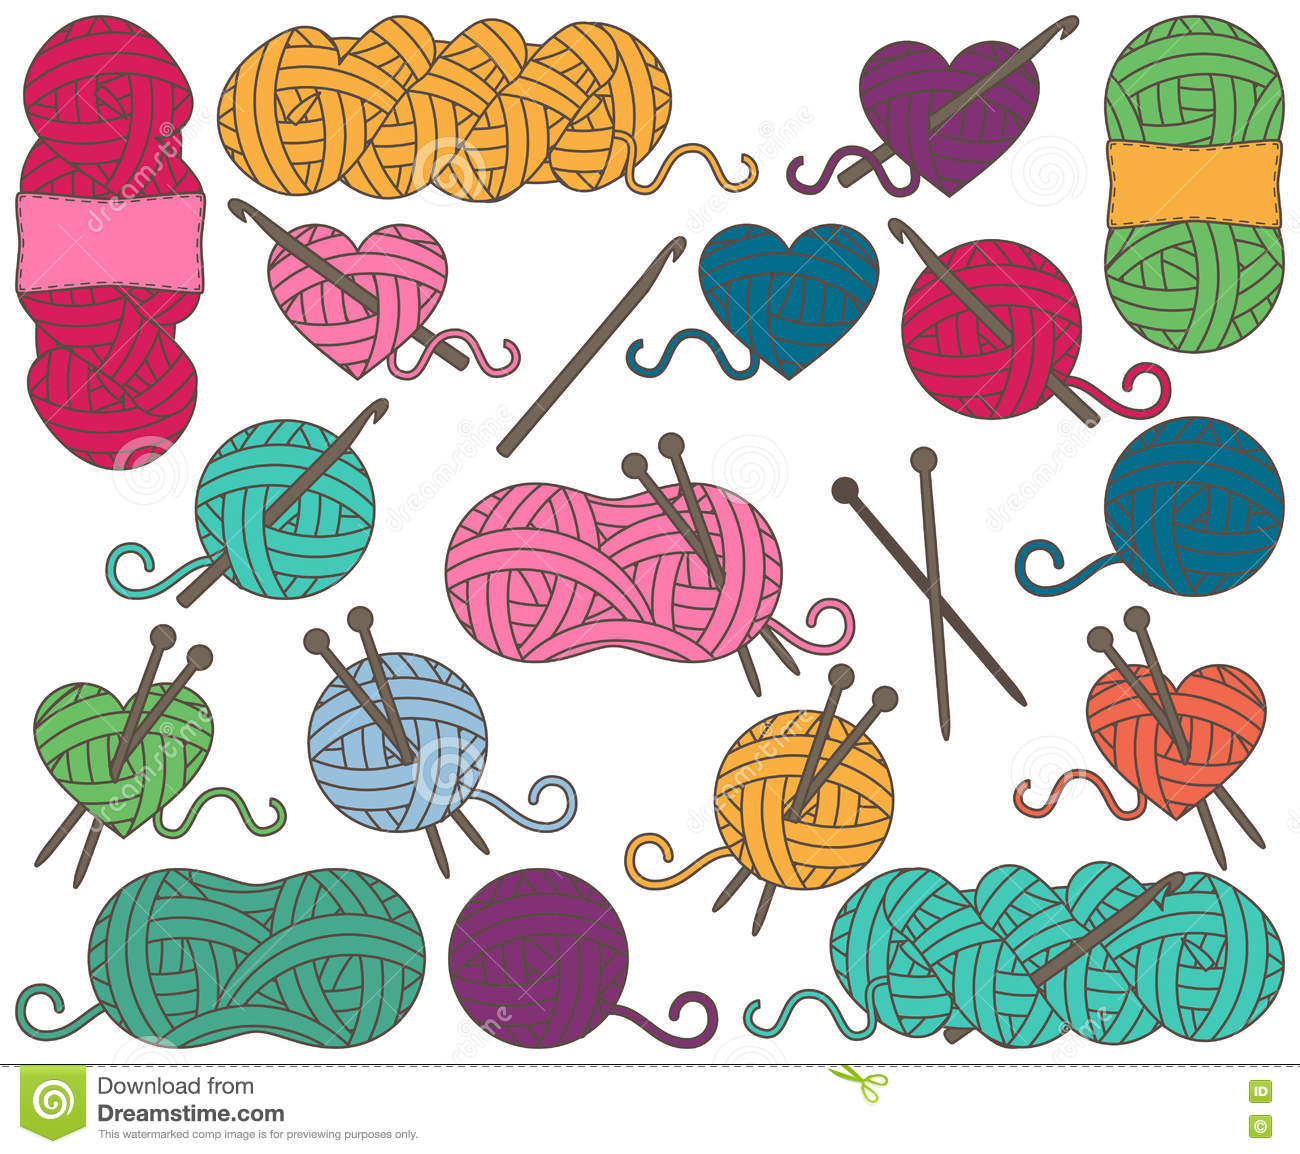 Cute Vector Collection of Balls of Yarn, Skeins of Yarn or Thread